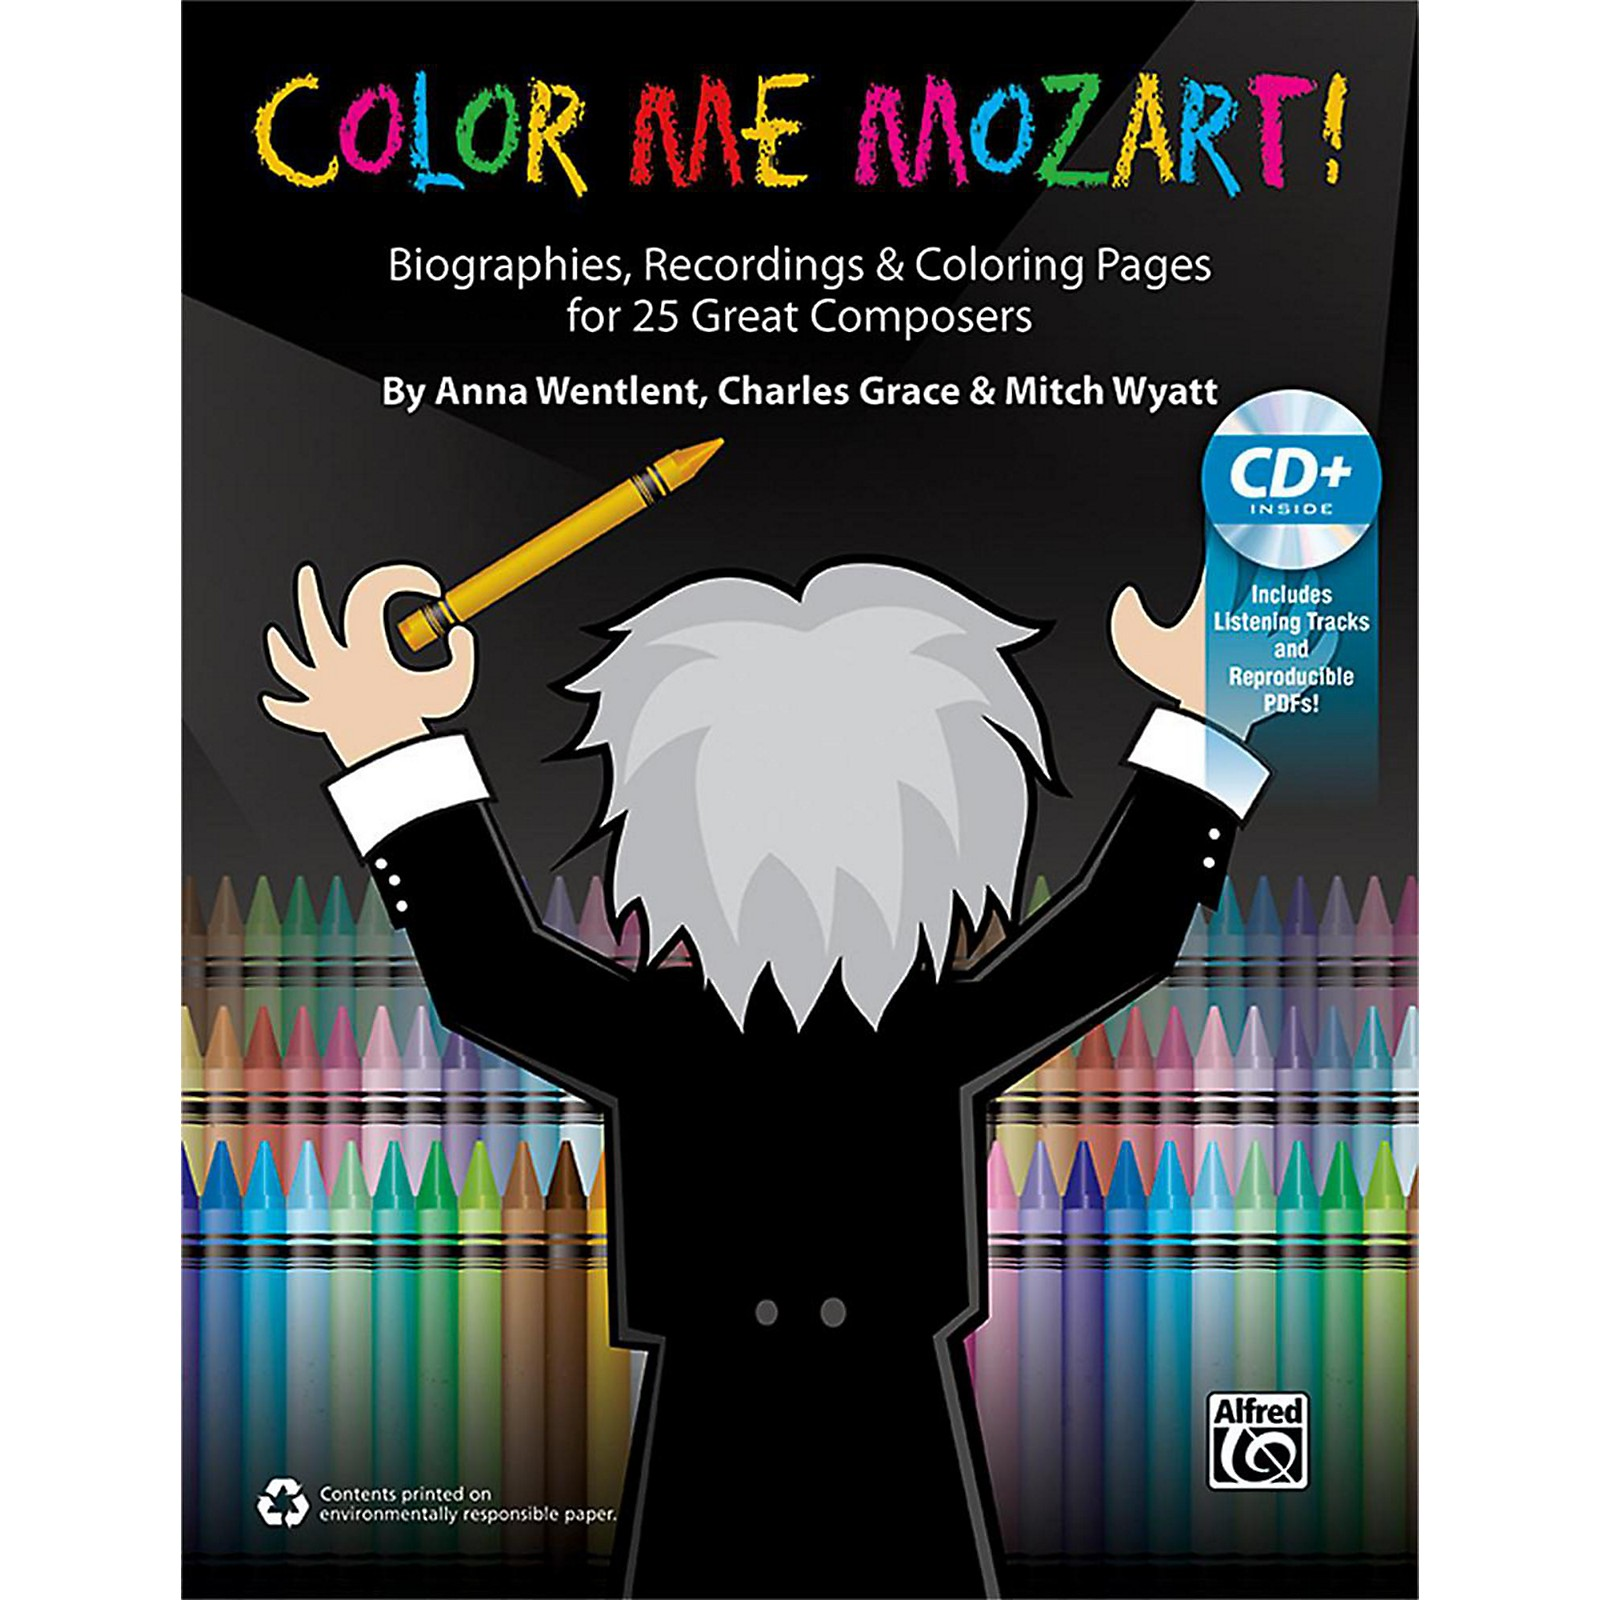 Alfred Color Me Mozart! 100% Reproducible Book & Enhanced CD